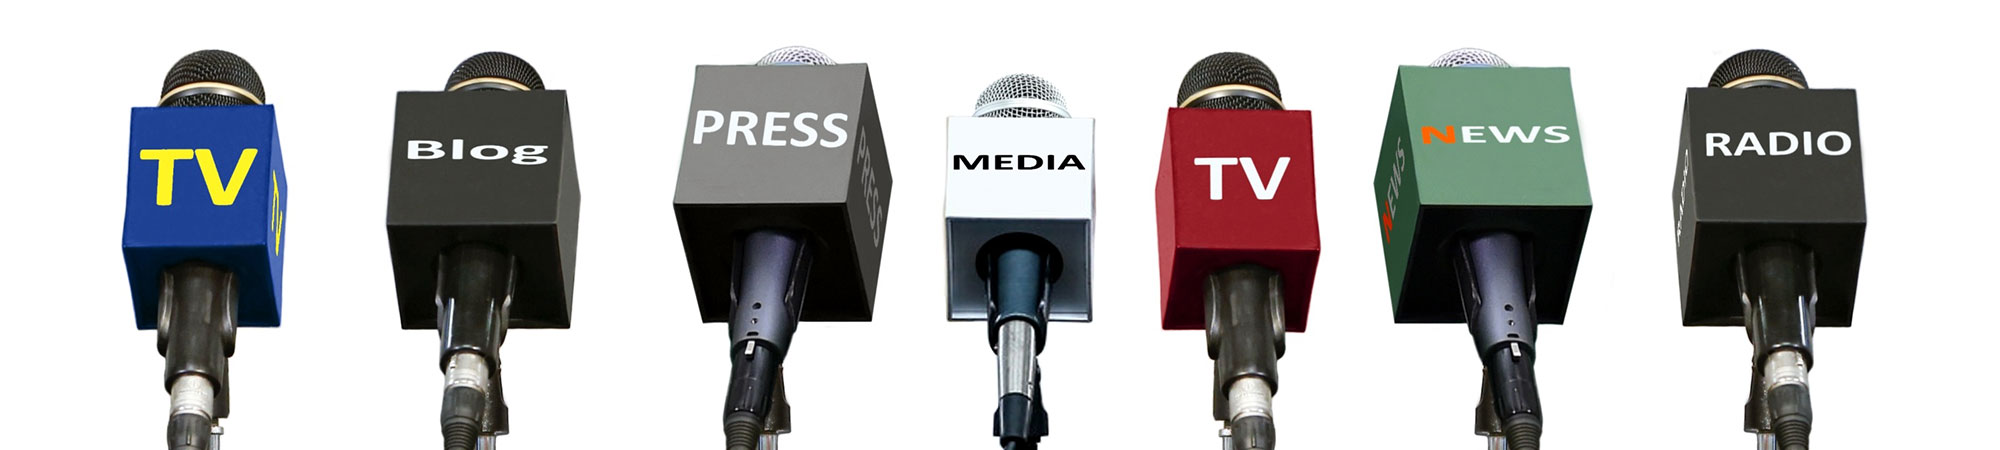 Banner showing microphones with different media labels